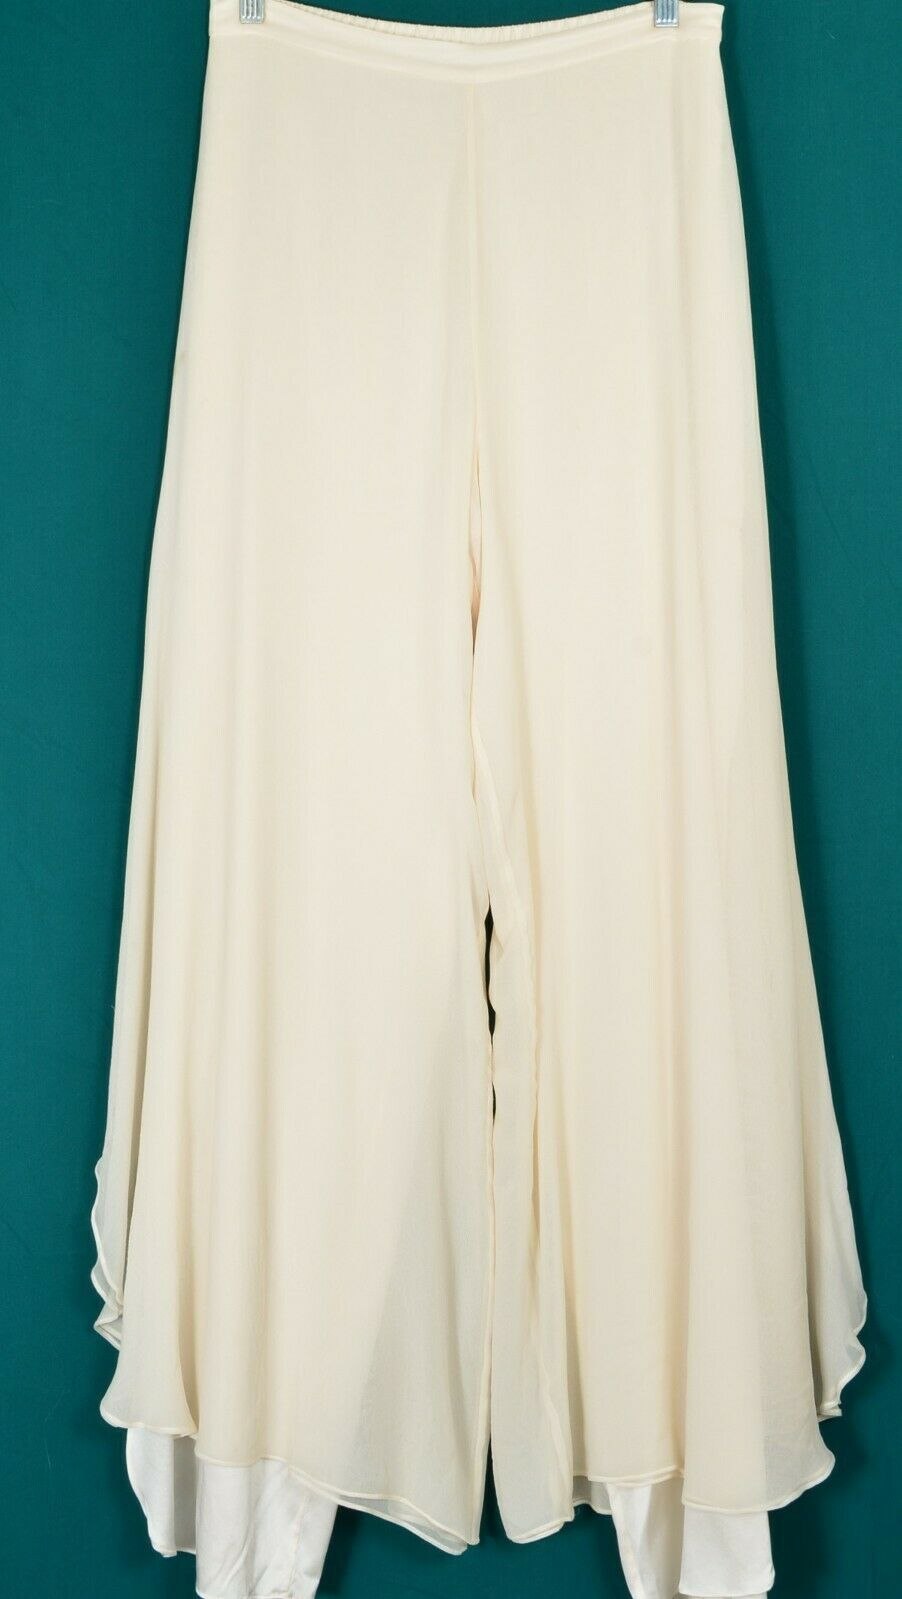 St John pants Evening SZ 8 off-white cream 2-layer silk long slits on leg USA image 6